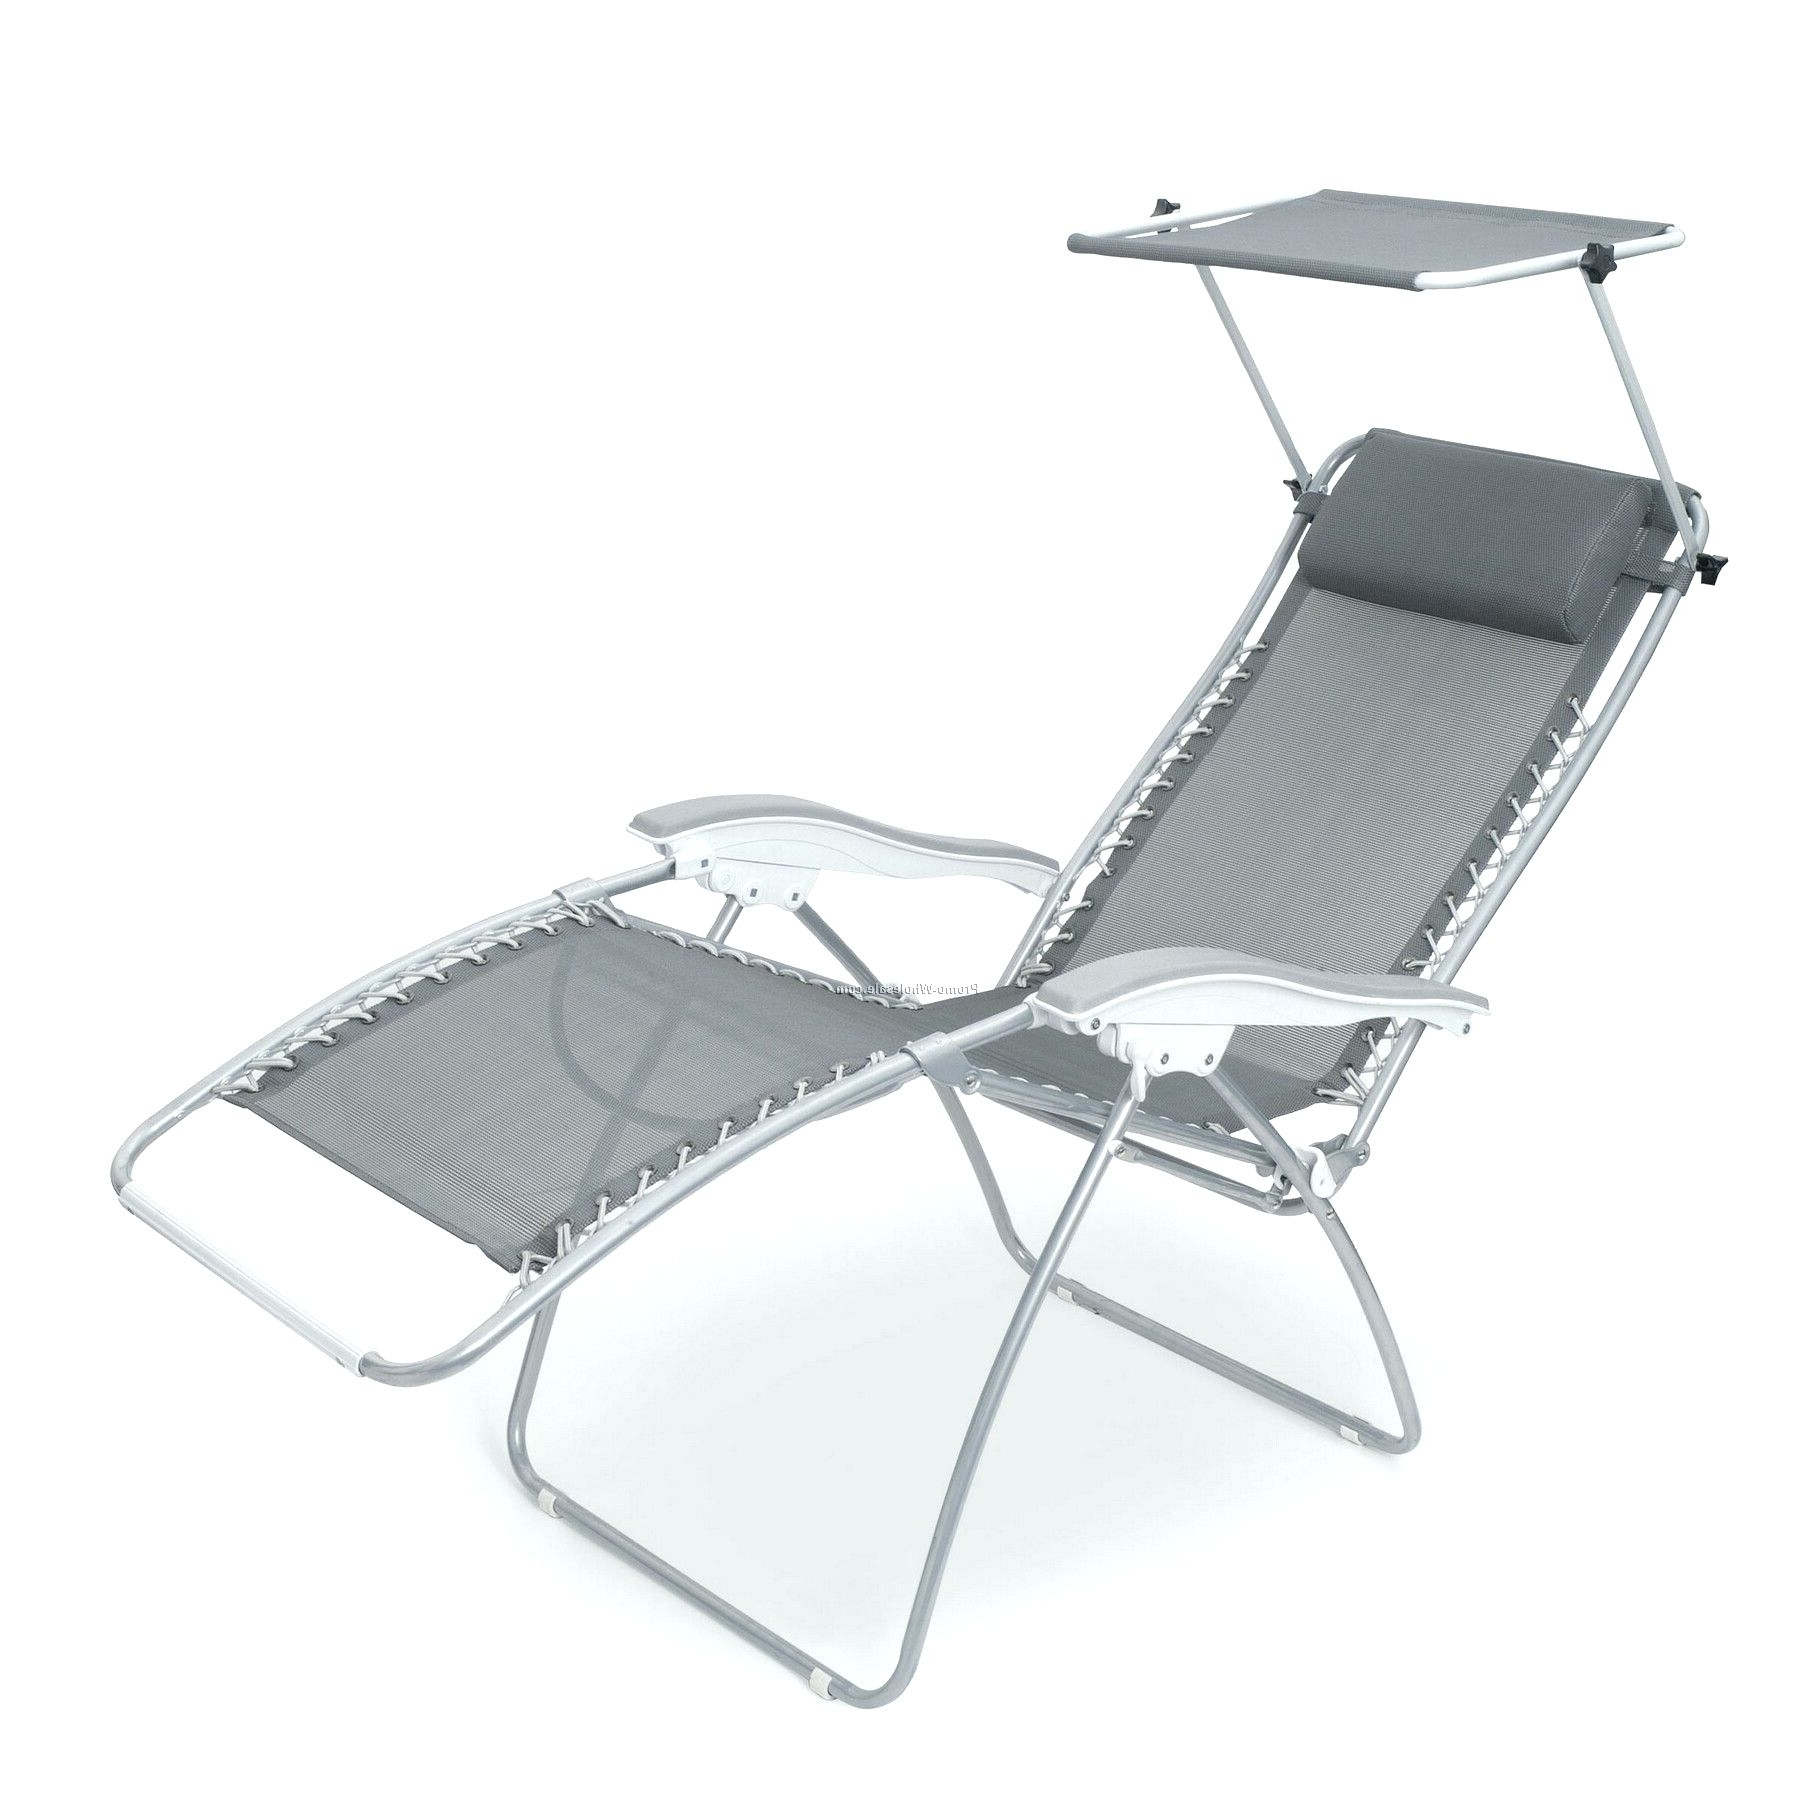 Most Recently Released Pvc Pipe Chaise Lounge Chairs • Lounge Chairs Ideas Inside Pvc Chaise Lounges (View 4 of 15)